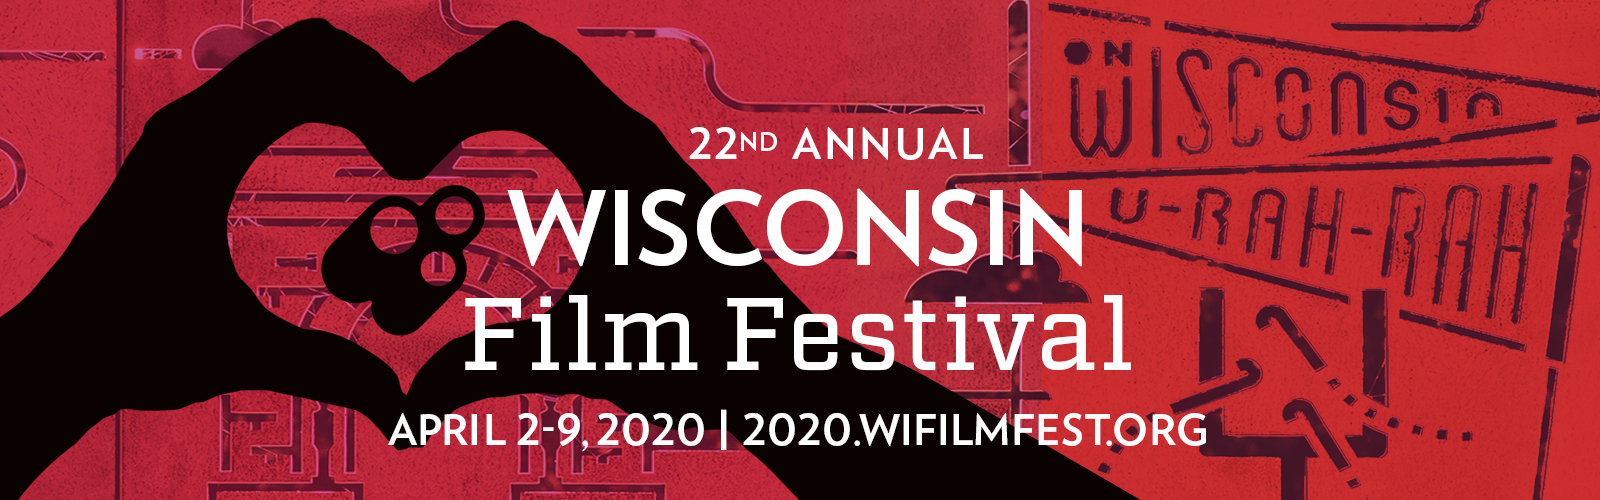 22nd Annual Wisconsin Film Festival. April 2-9, 2020. 2020.wifilmfest.org